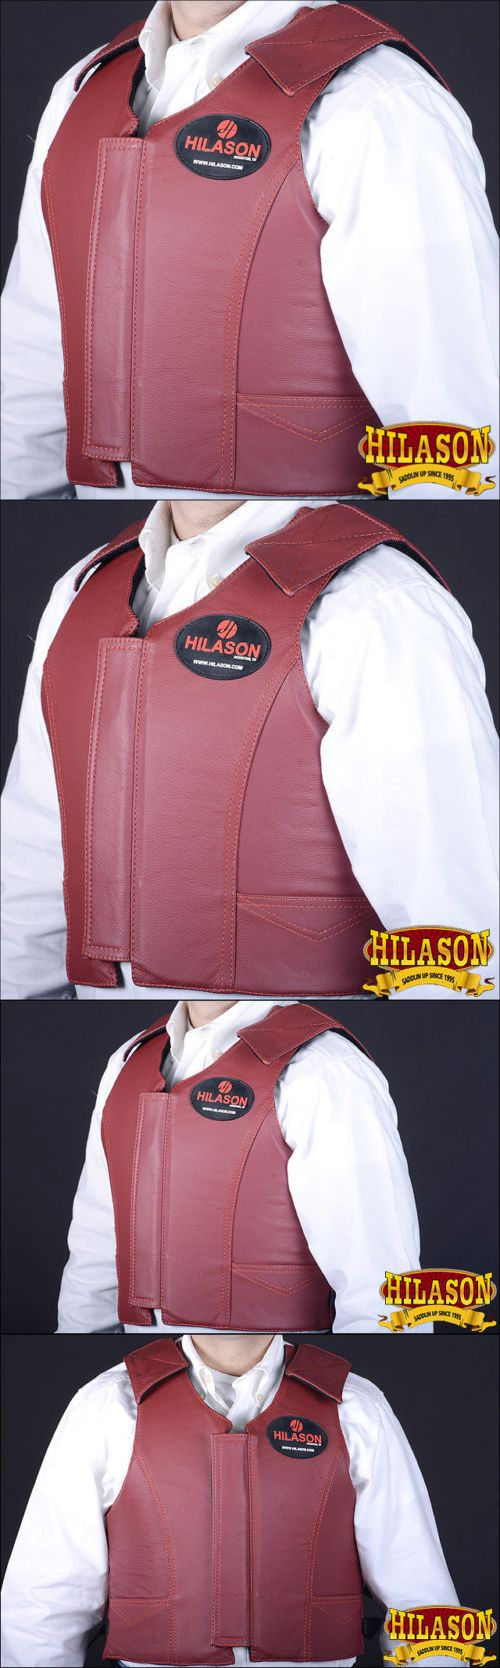 Other Protective Gear 87446: Cpv111nd Hilason Leather Bareback Pro Rodeo Horse Riding Protective Vest - Med -> BUY IT NOW ONLY: $149.99 on eBay!